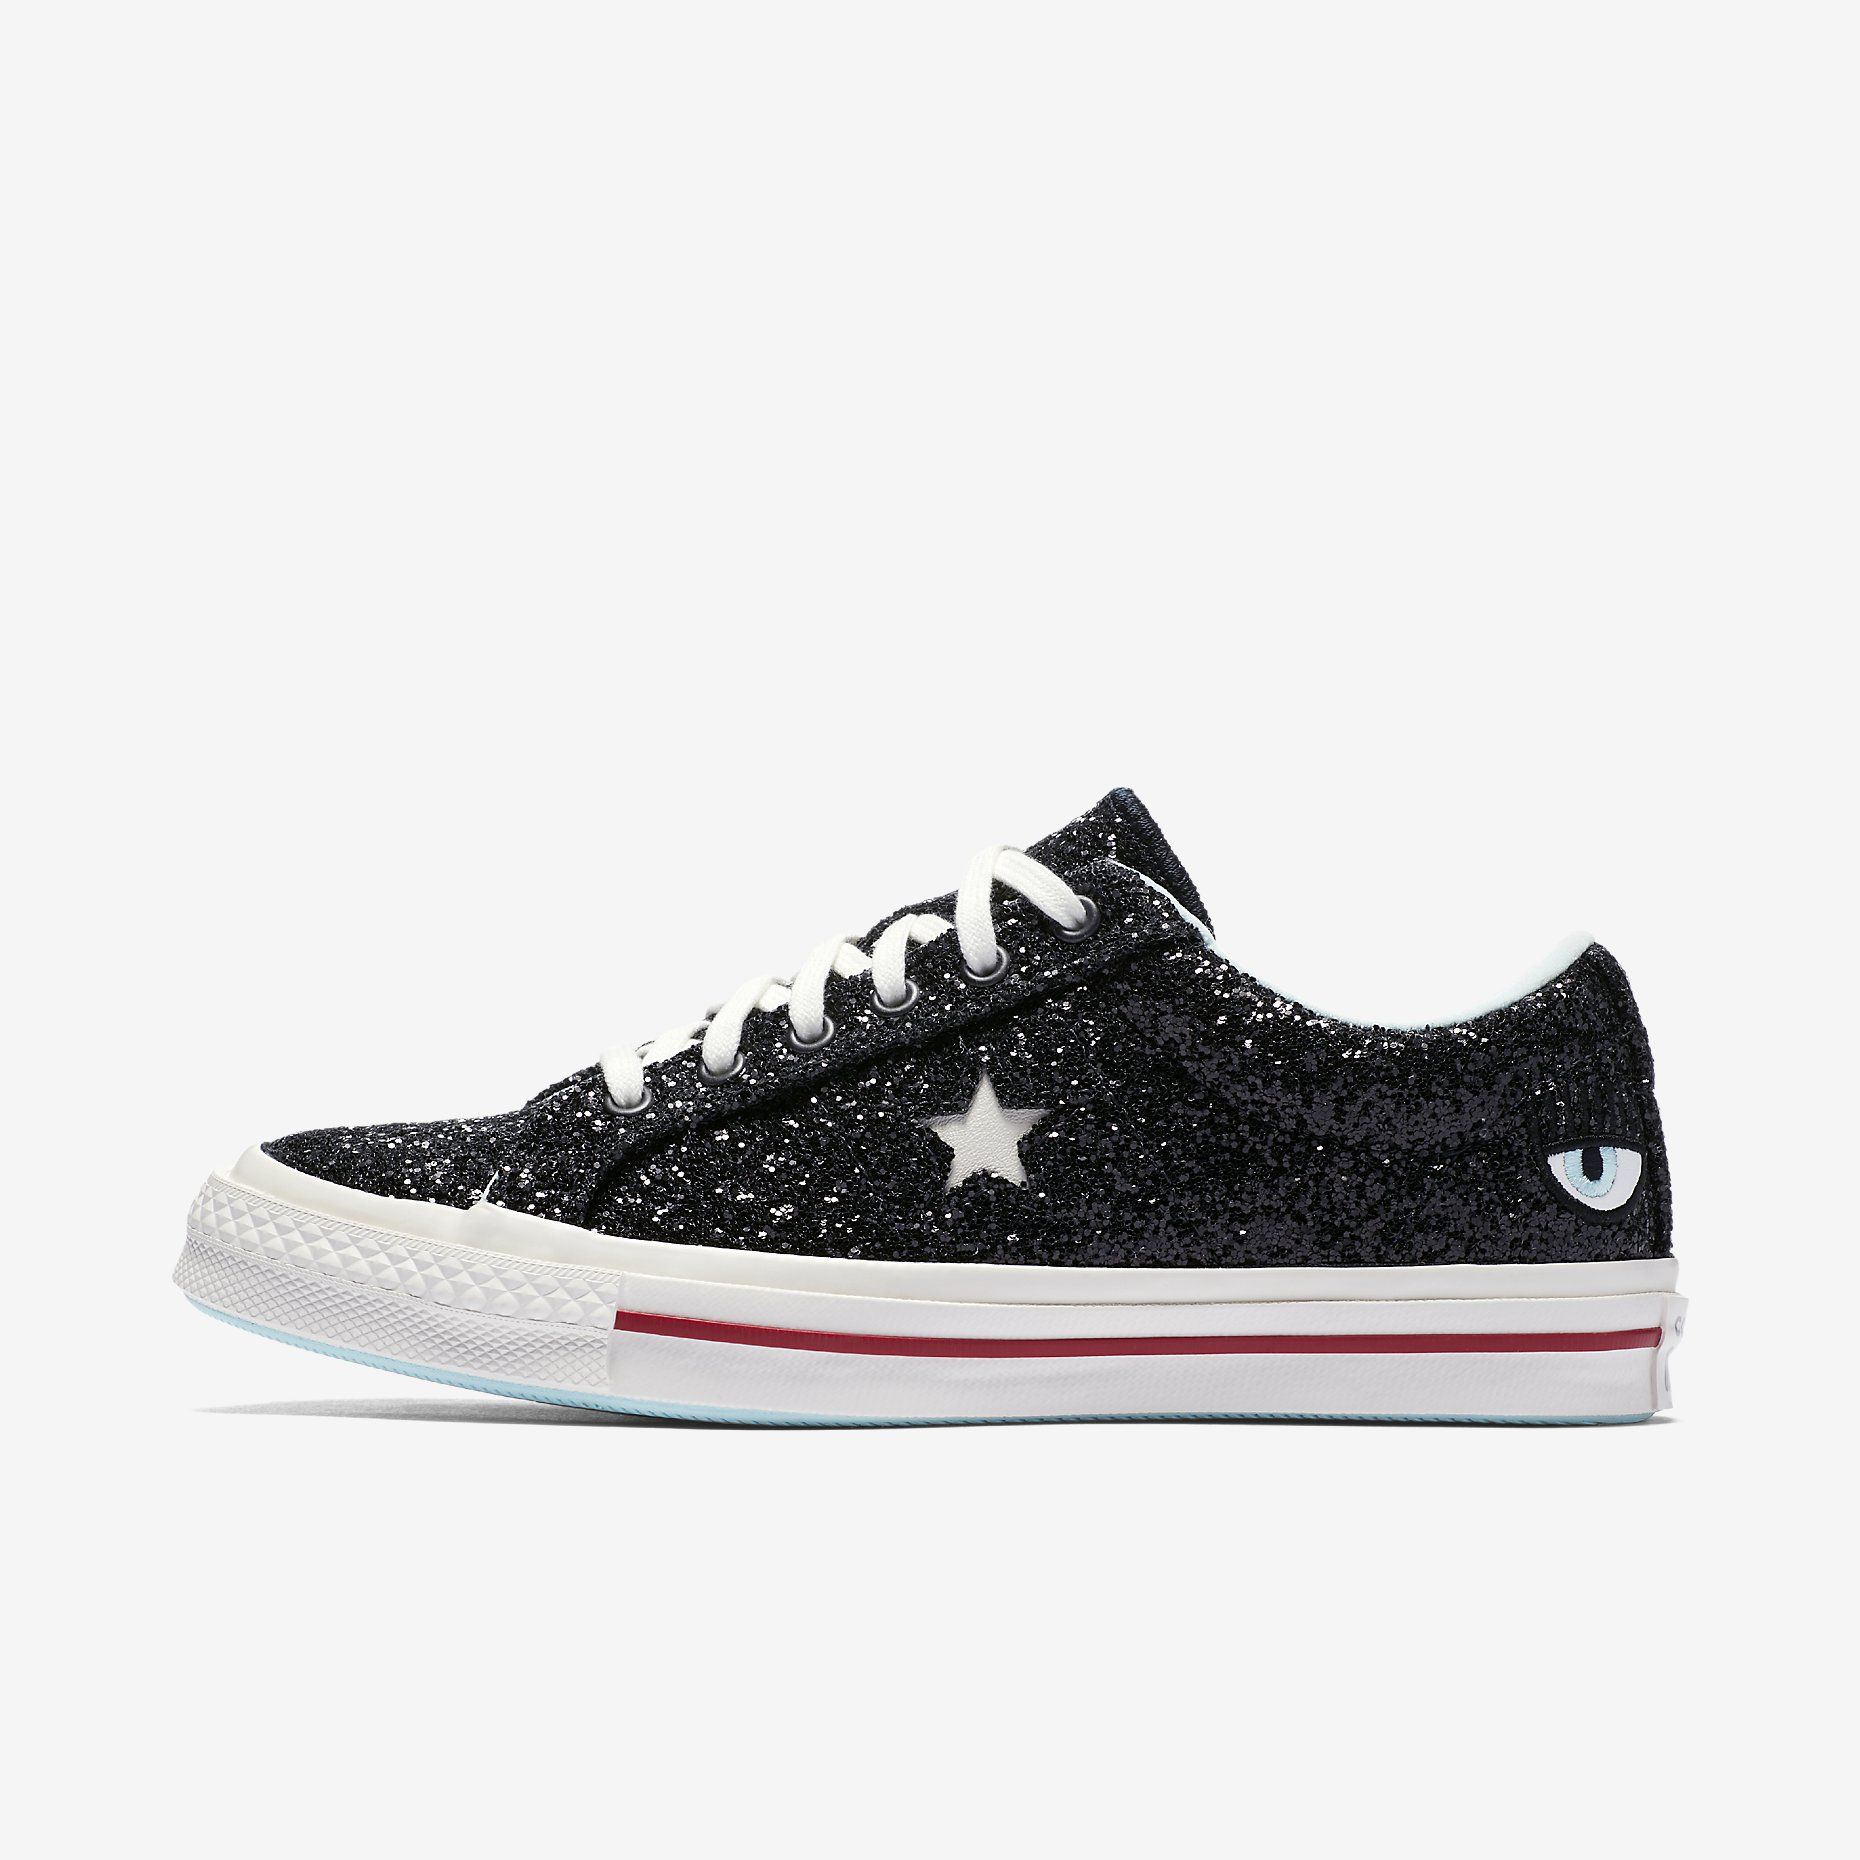 aa4de5876f5c Converse x Chiara Ferragni One Star Low Top Women s Shoe. Nike.com ...